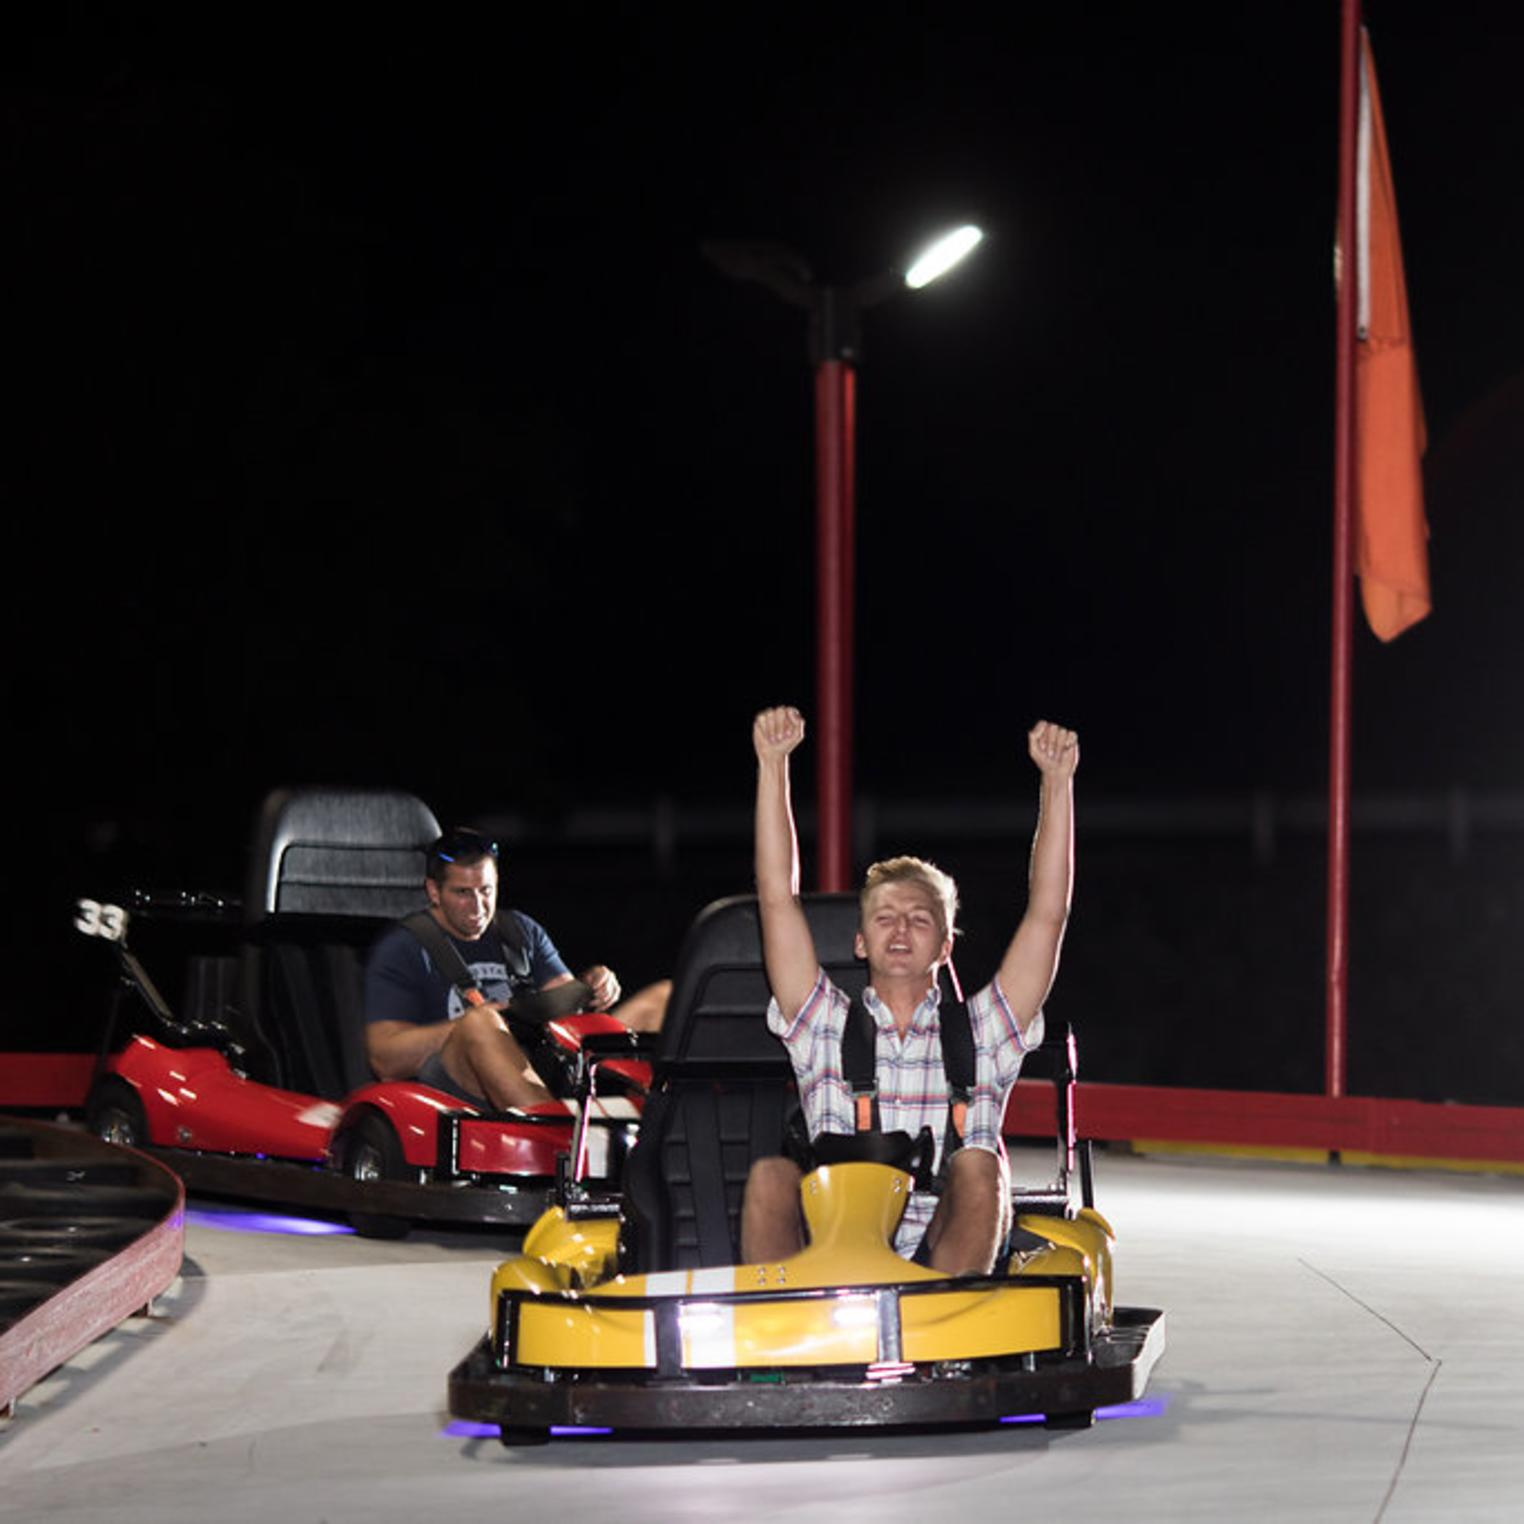 Outdoor Grand Prix Go-karts